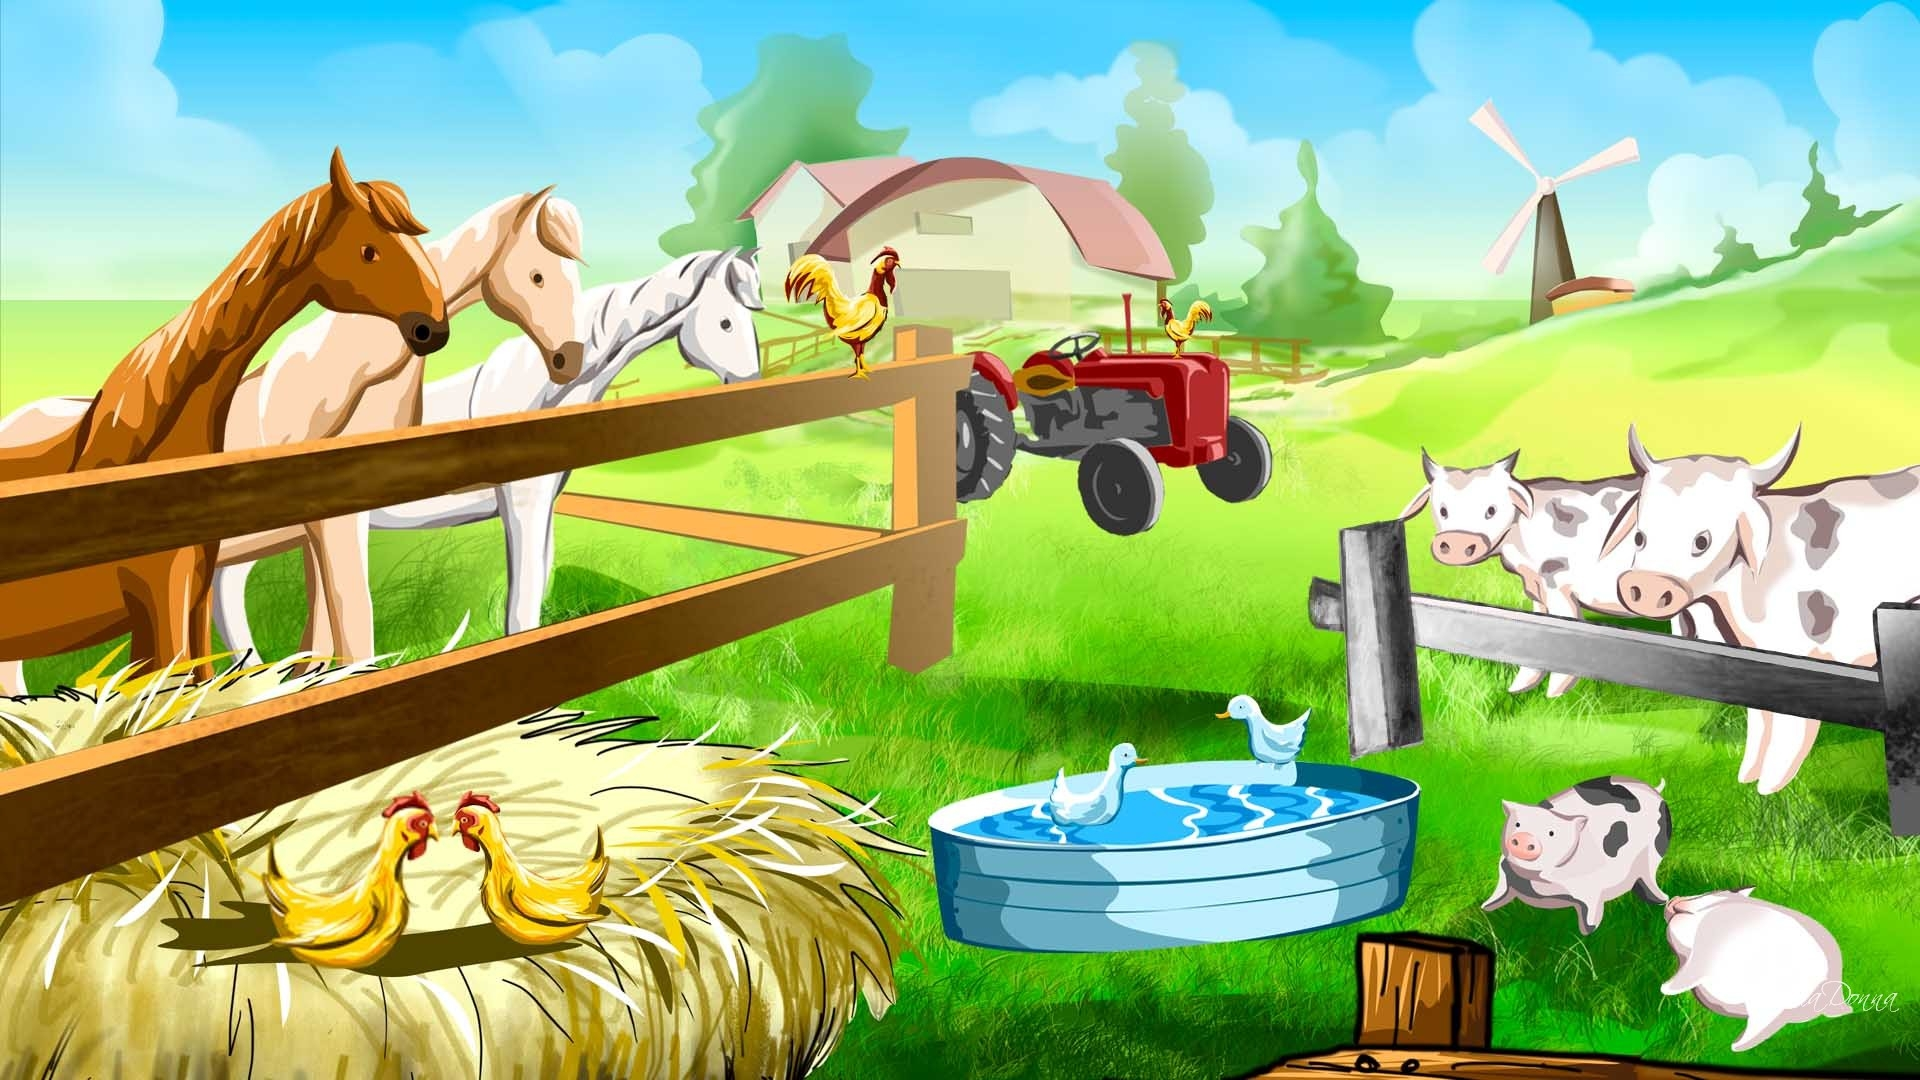 Download Farm Wallpaper For Kids Gallery